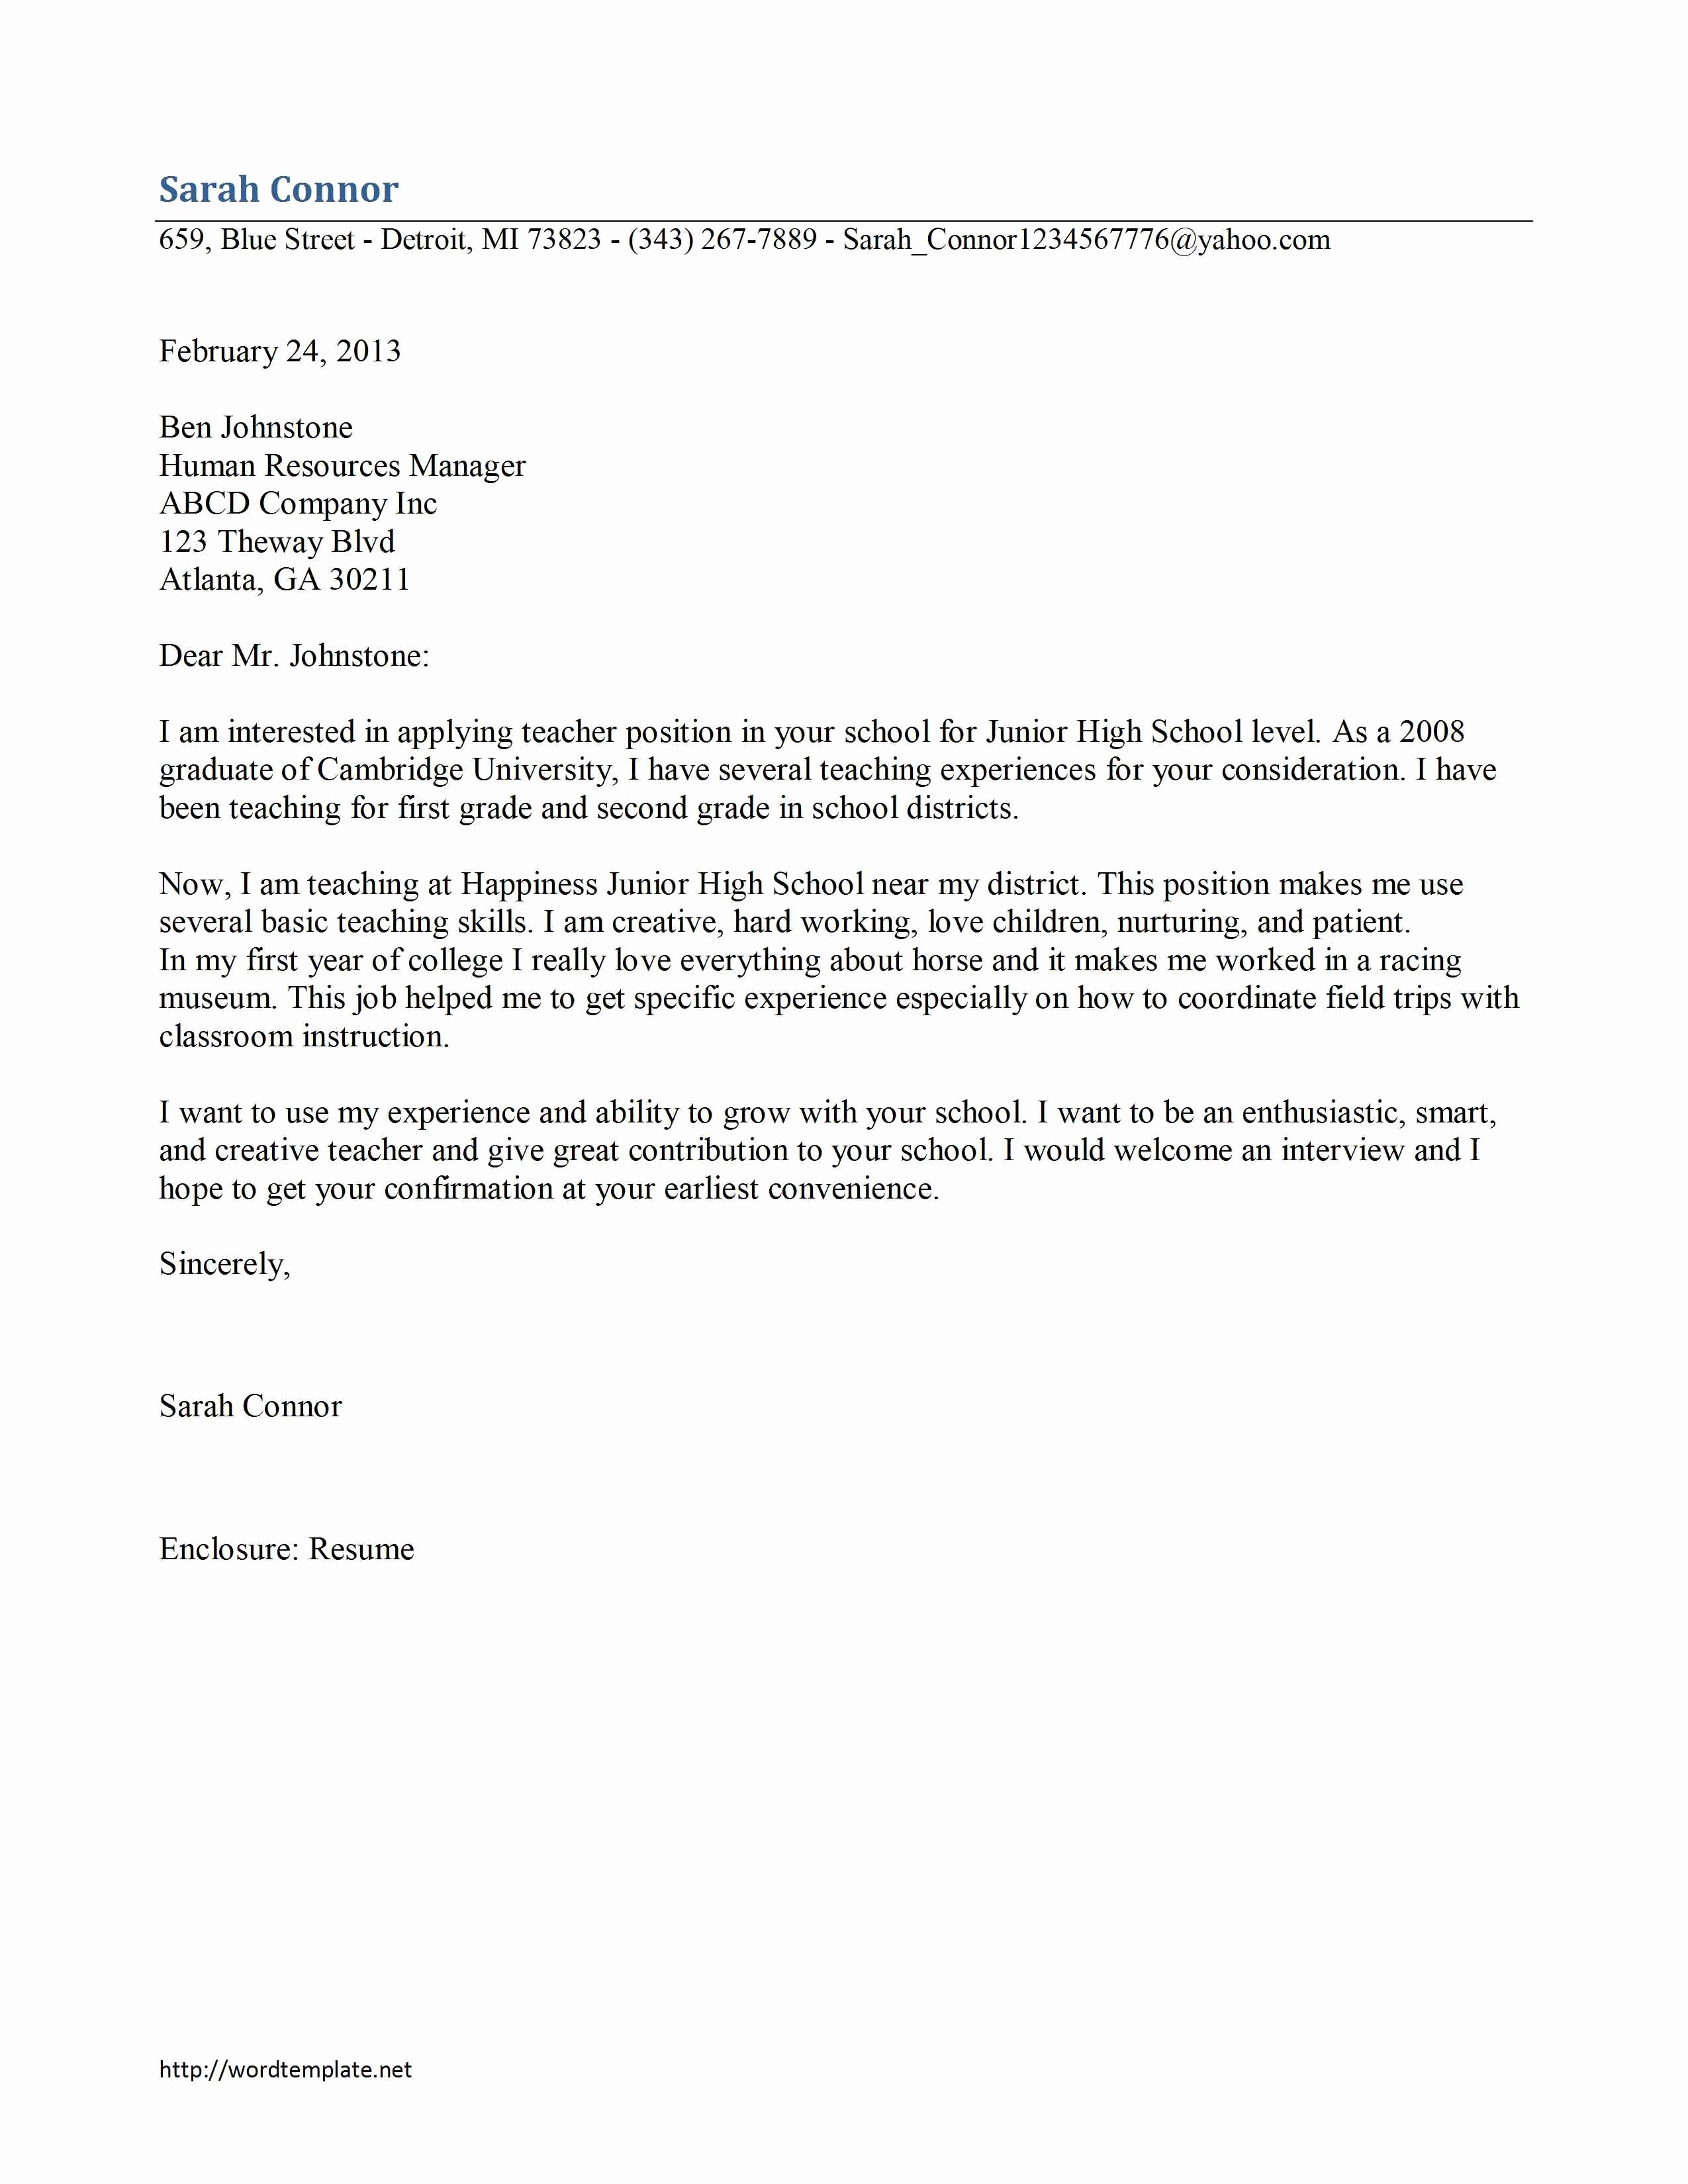 Free Cover Letter Examples for Teachers